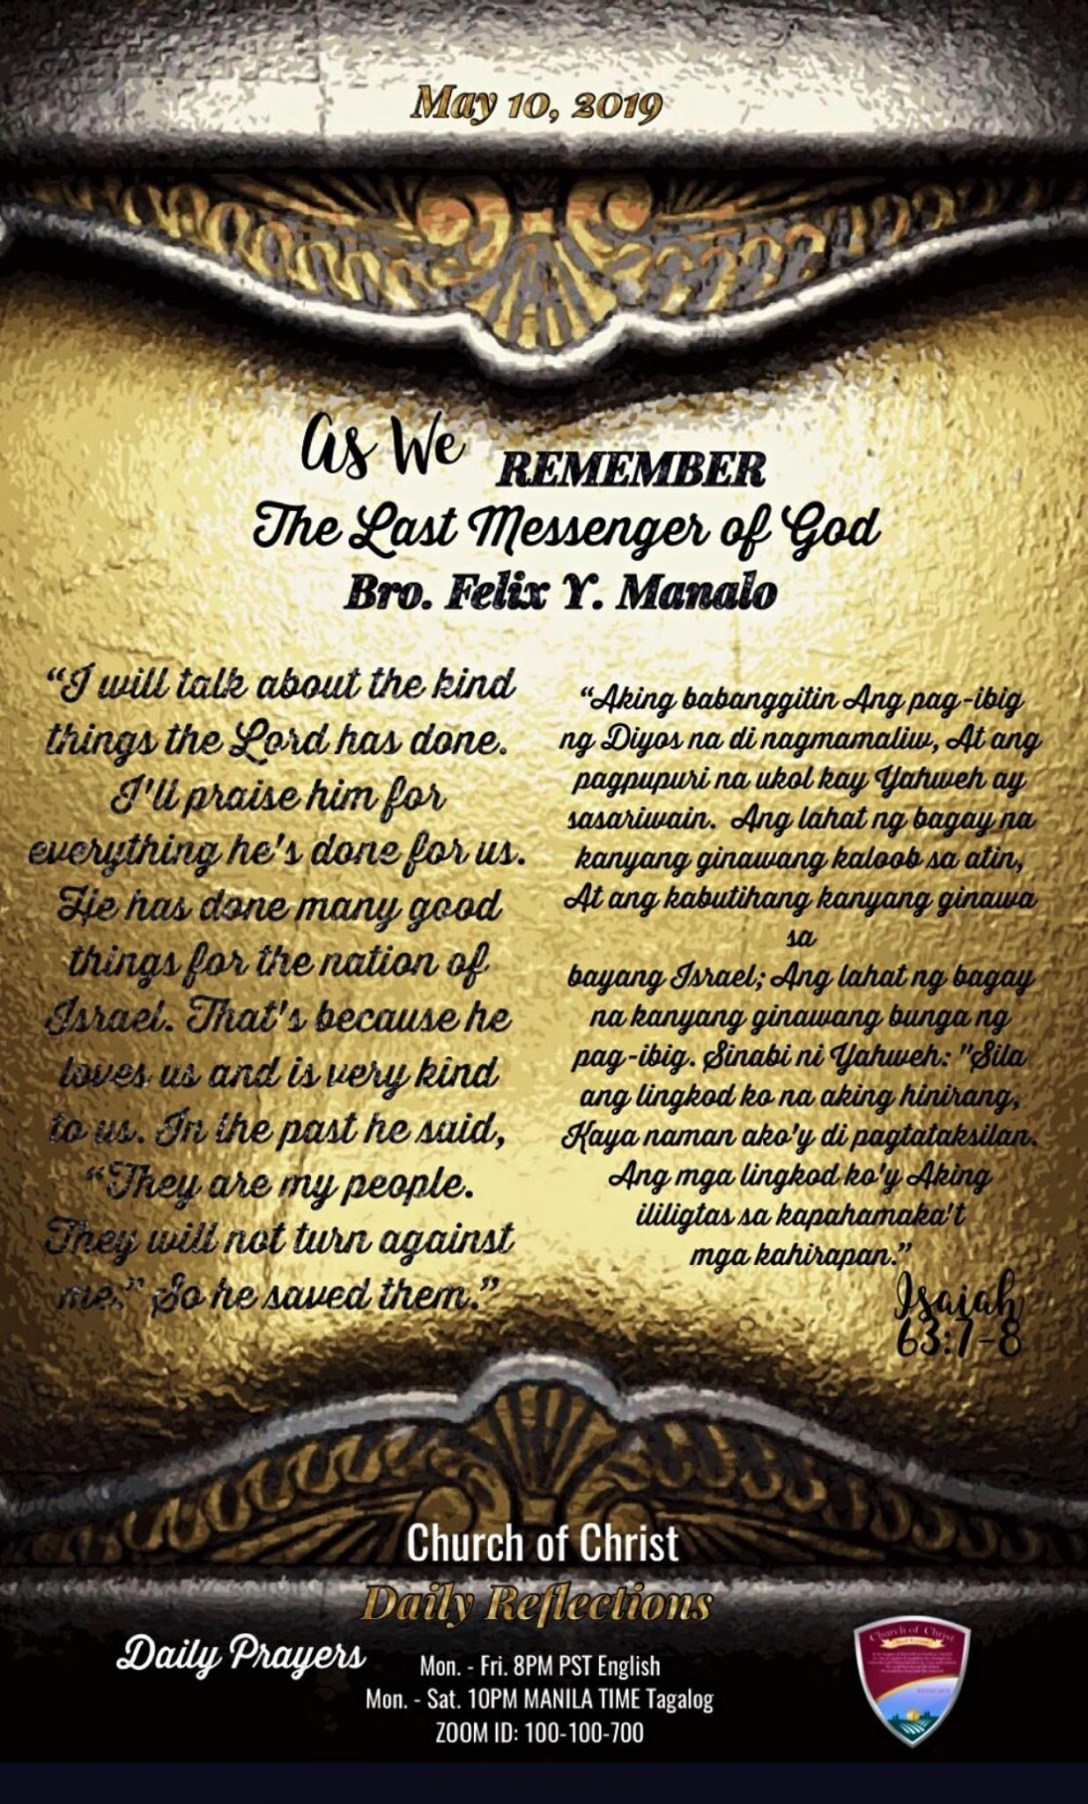 Remembering Bro. Felix Y. Manalo